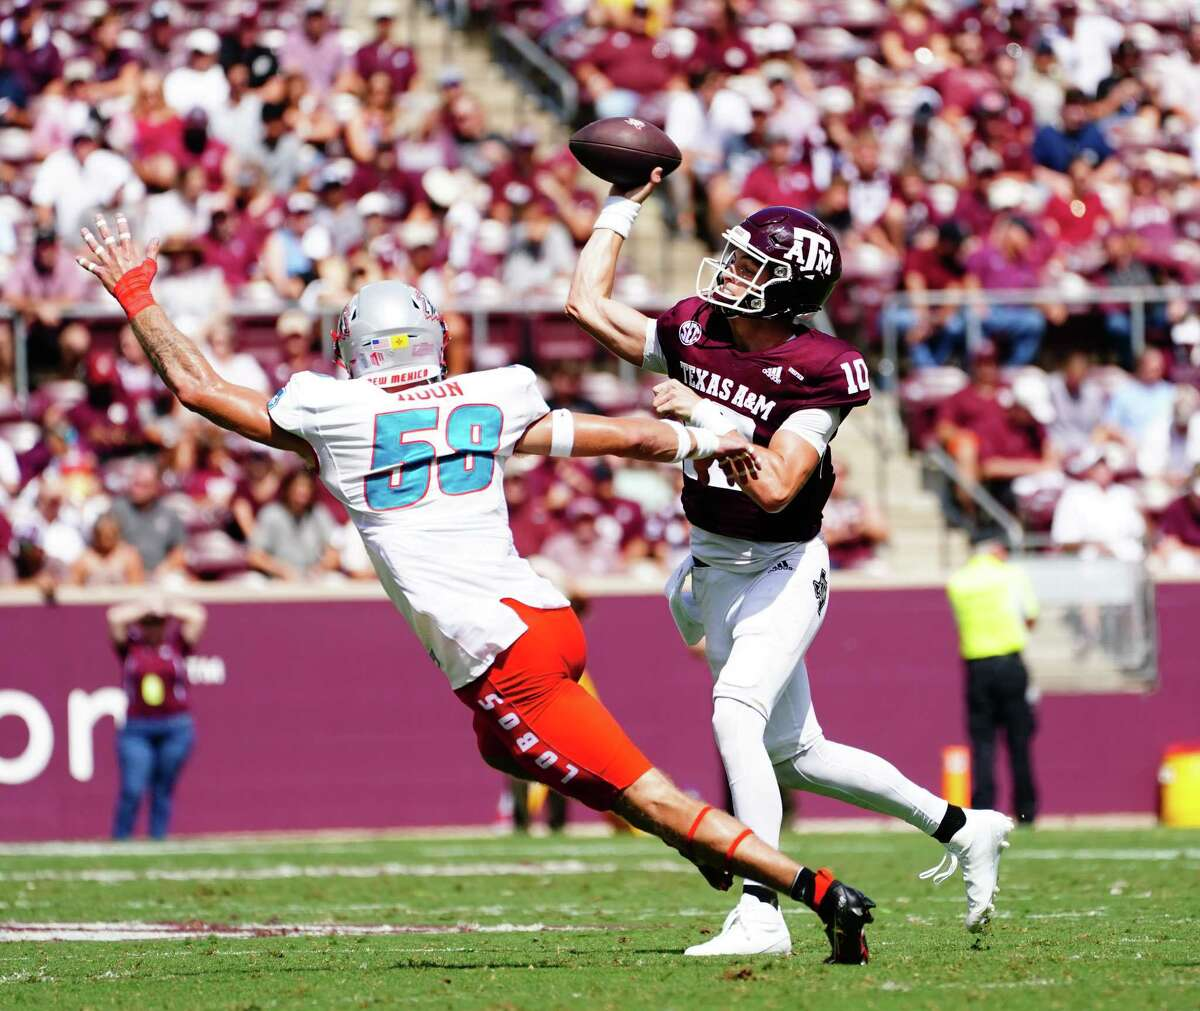 COLLEGE STATION, TX - SEPTEMBER 18: Quarterback Zach Calzada #10 of the Texas A&M Aggies throws during the second quarter of the game against New Mexico Lobos at Kyle Field on September 18, 2021 in College Station, Texas.